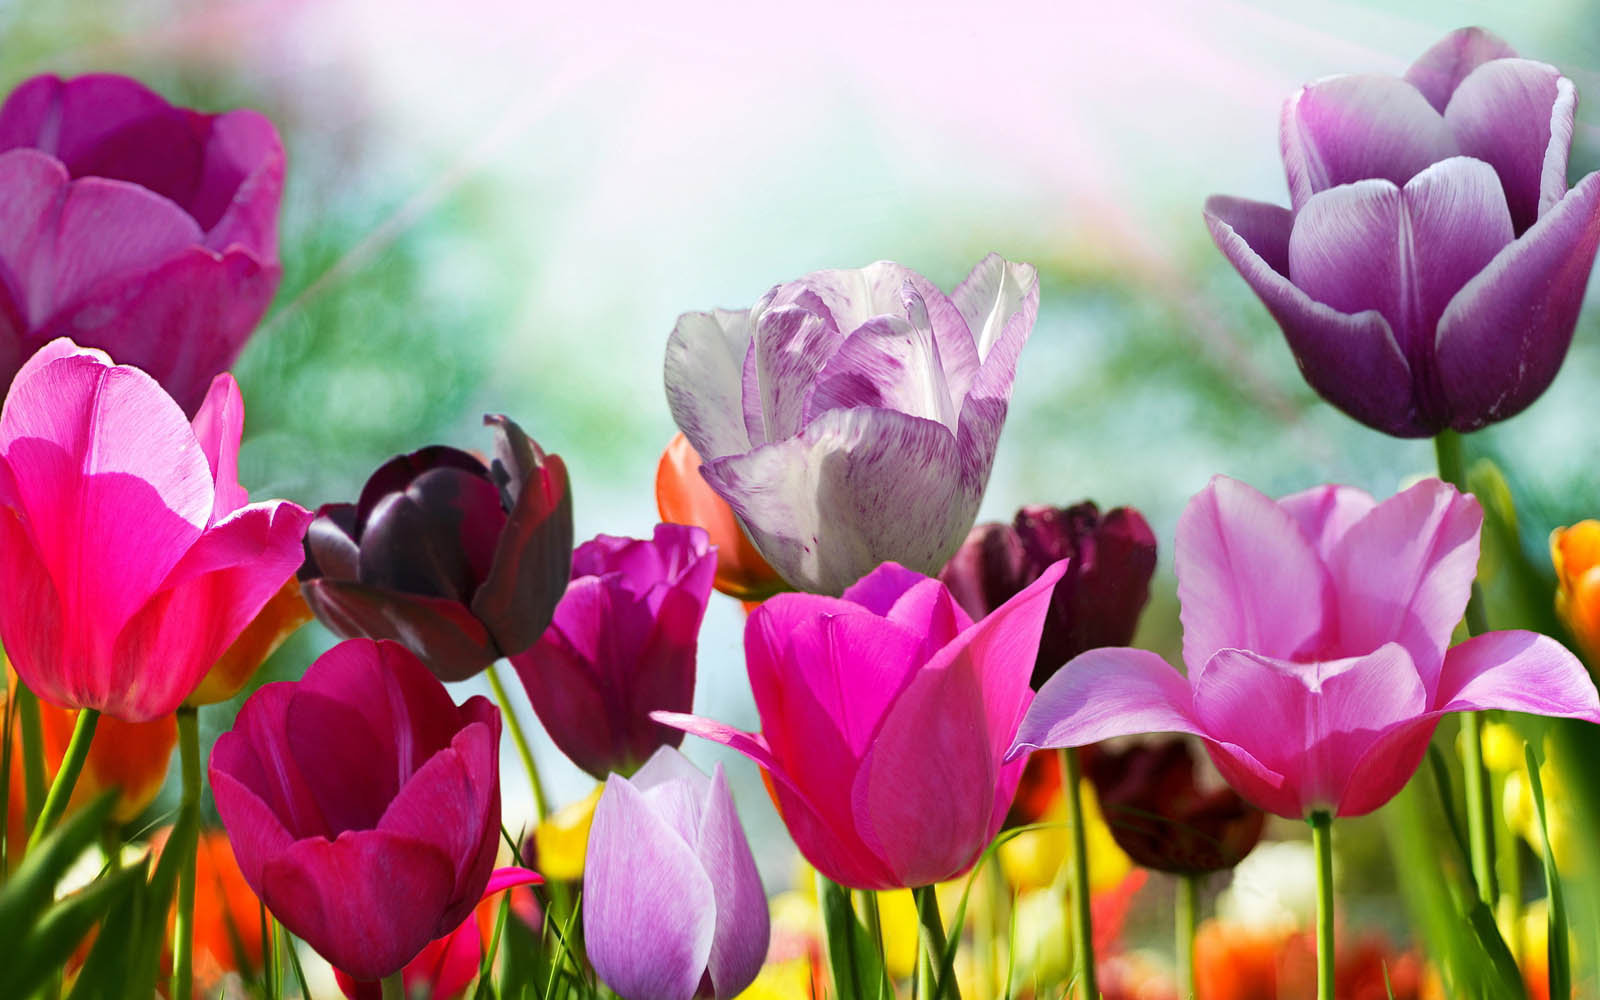 tulips in the spring - photo #9